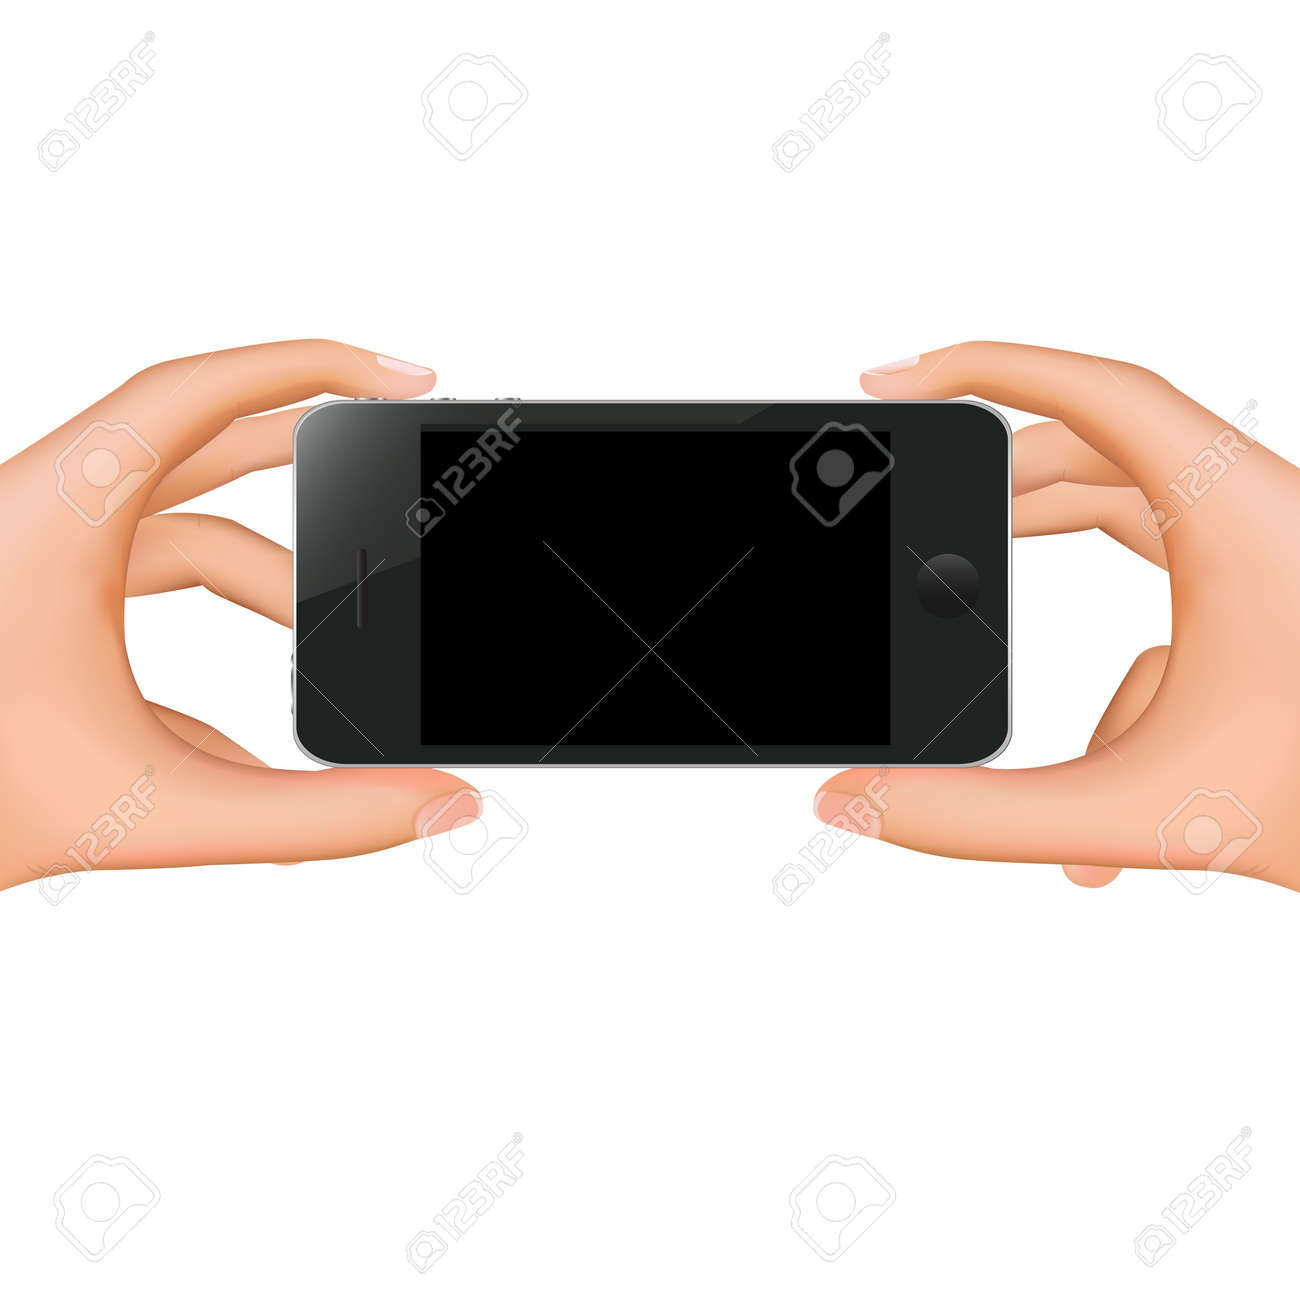 Hands Holding Phone With Gradient Mesh, Isolated On White Background, Vector Illustration Stock Vector - 18427760